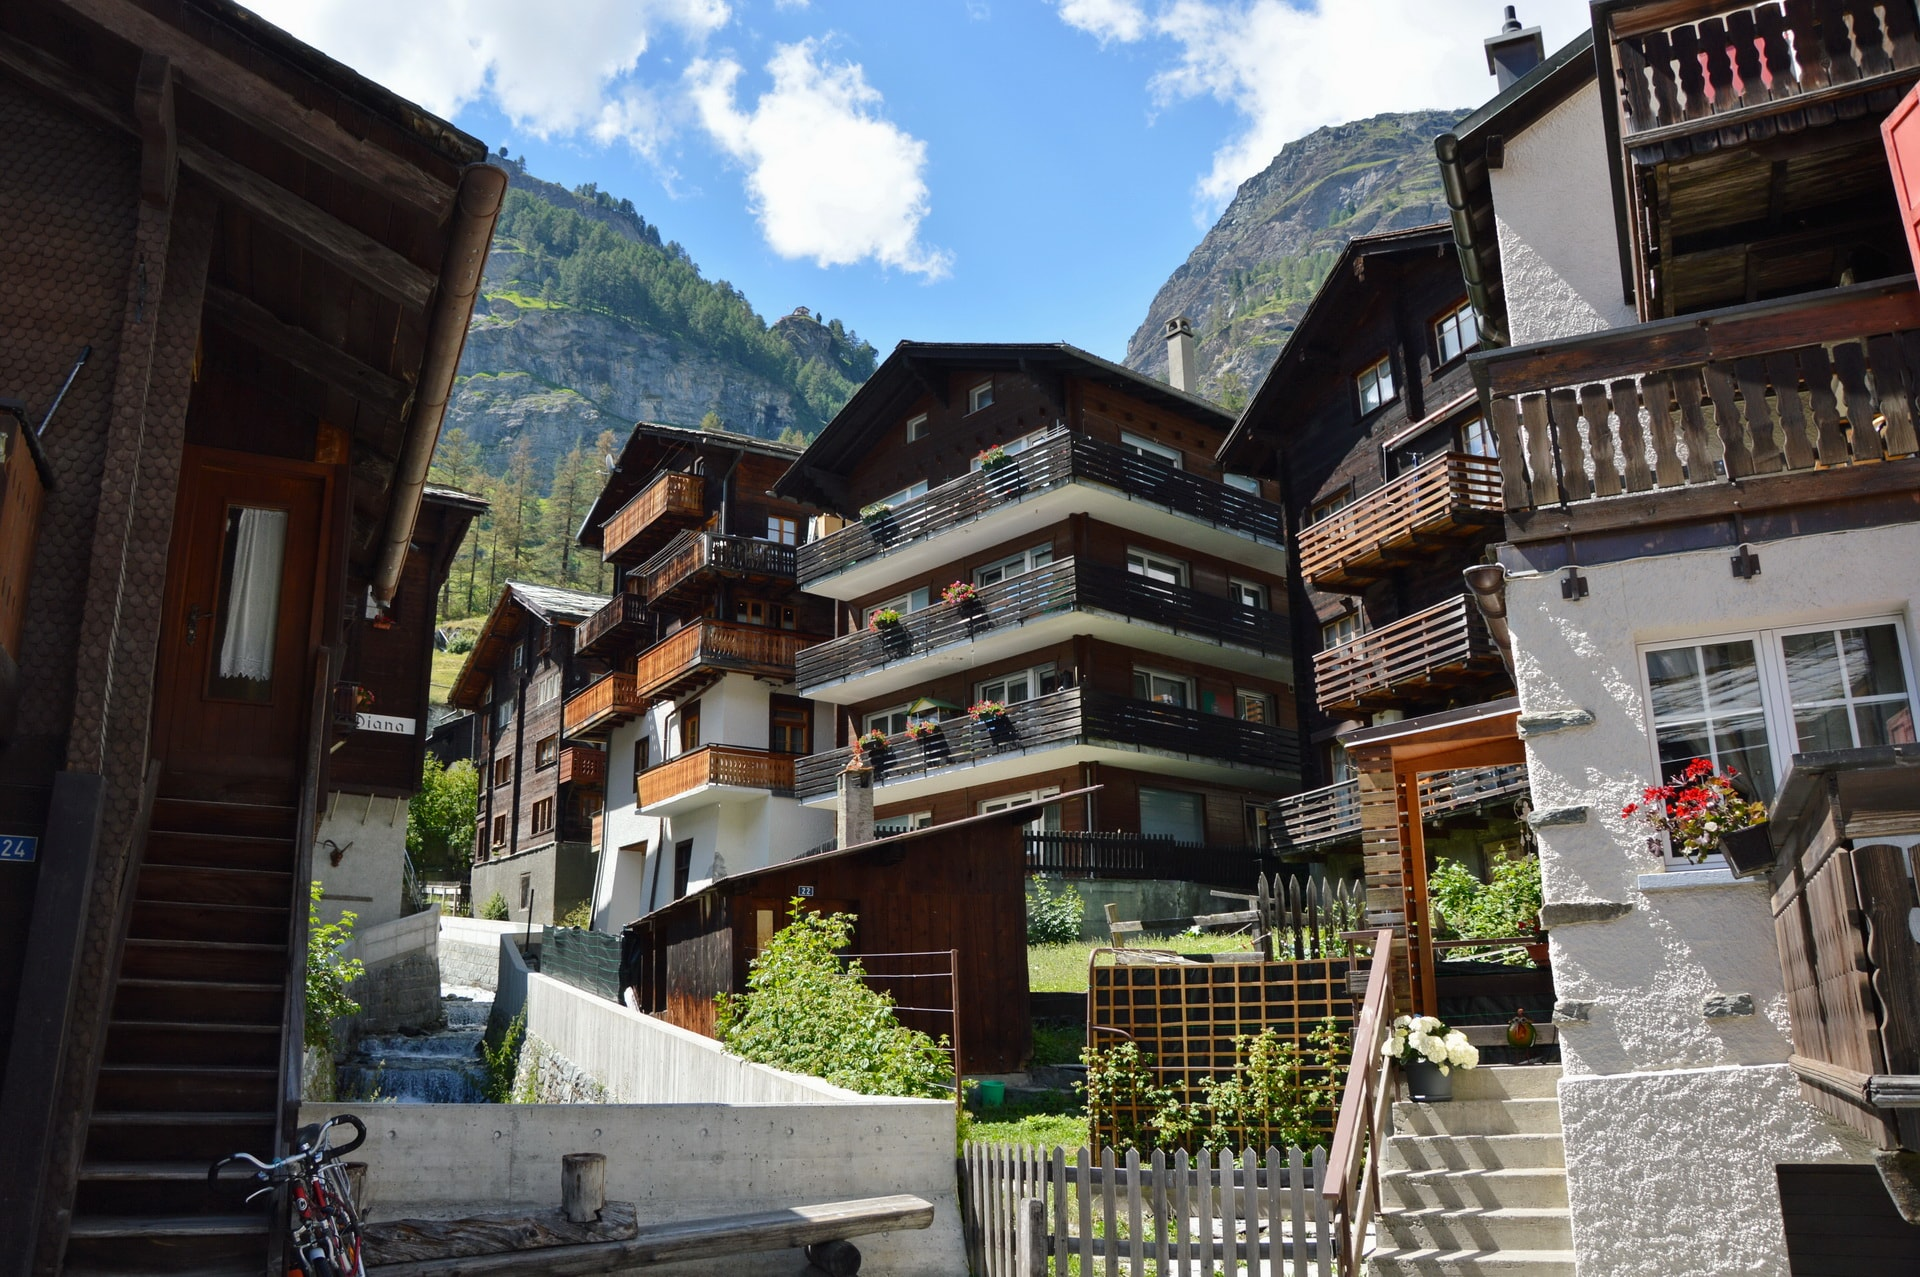 Zermatt is full of hotels and chalets for tourists